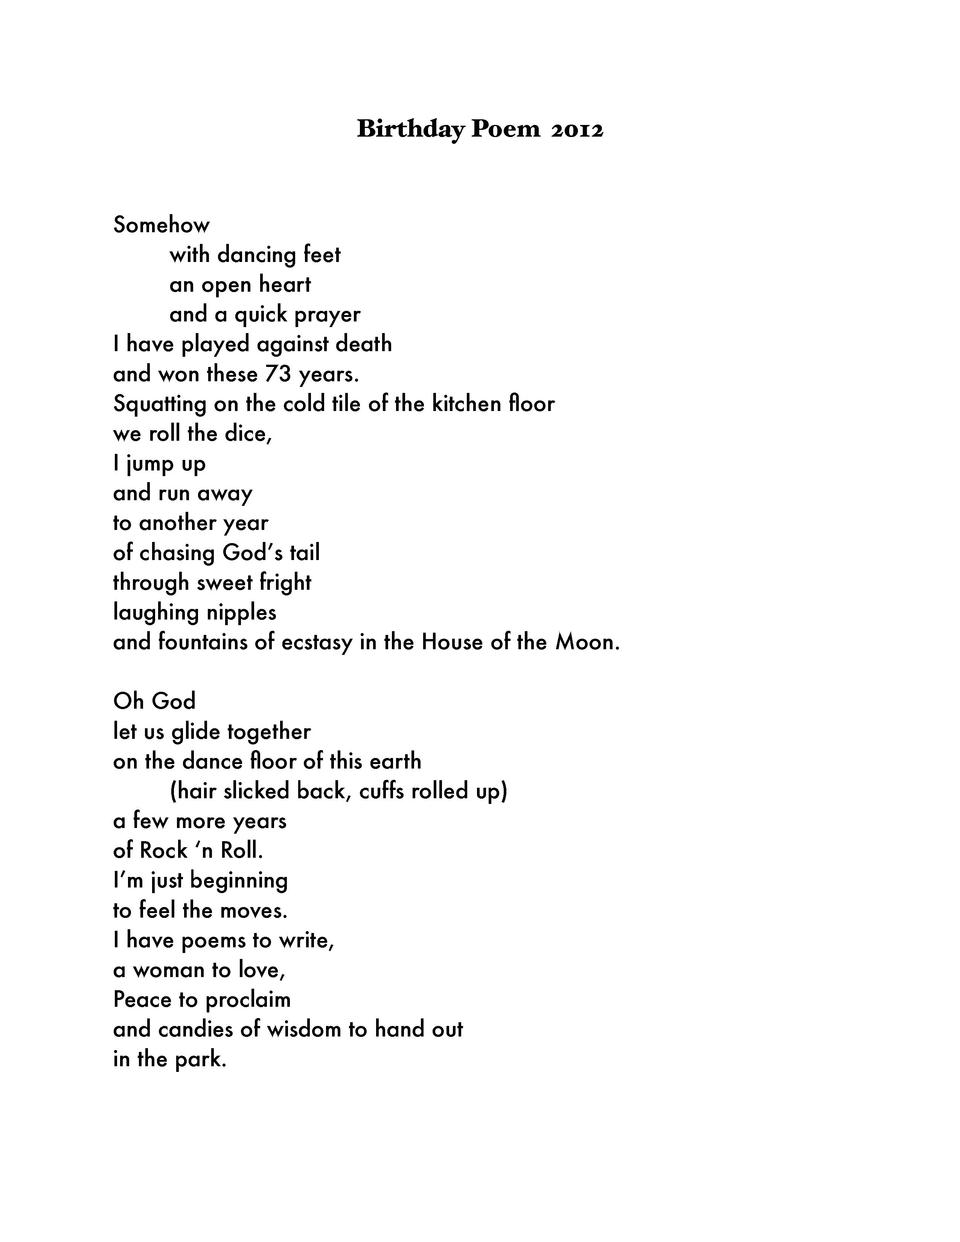 Birthday Poem 2012  Somehow   with dancing feet   an open heart   and a quick prayer I have played against death and won t...